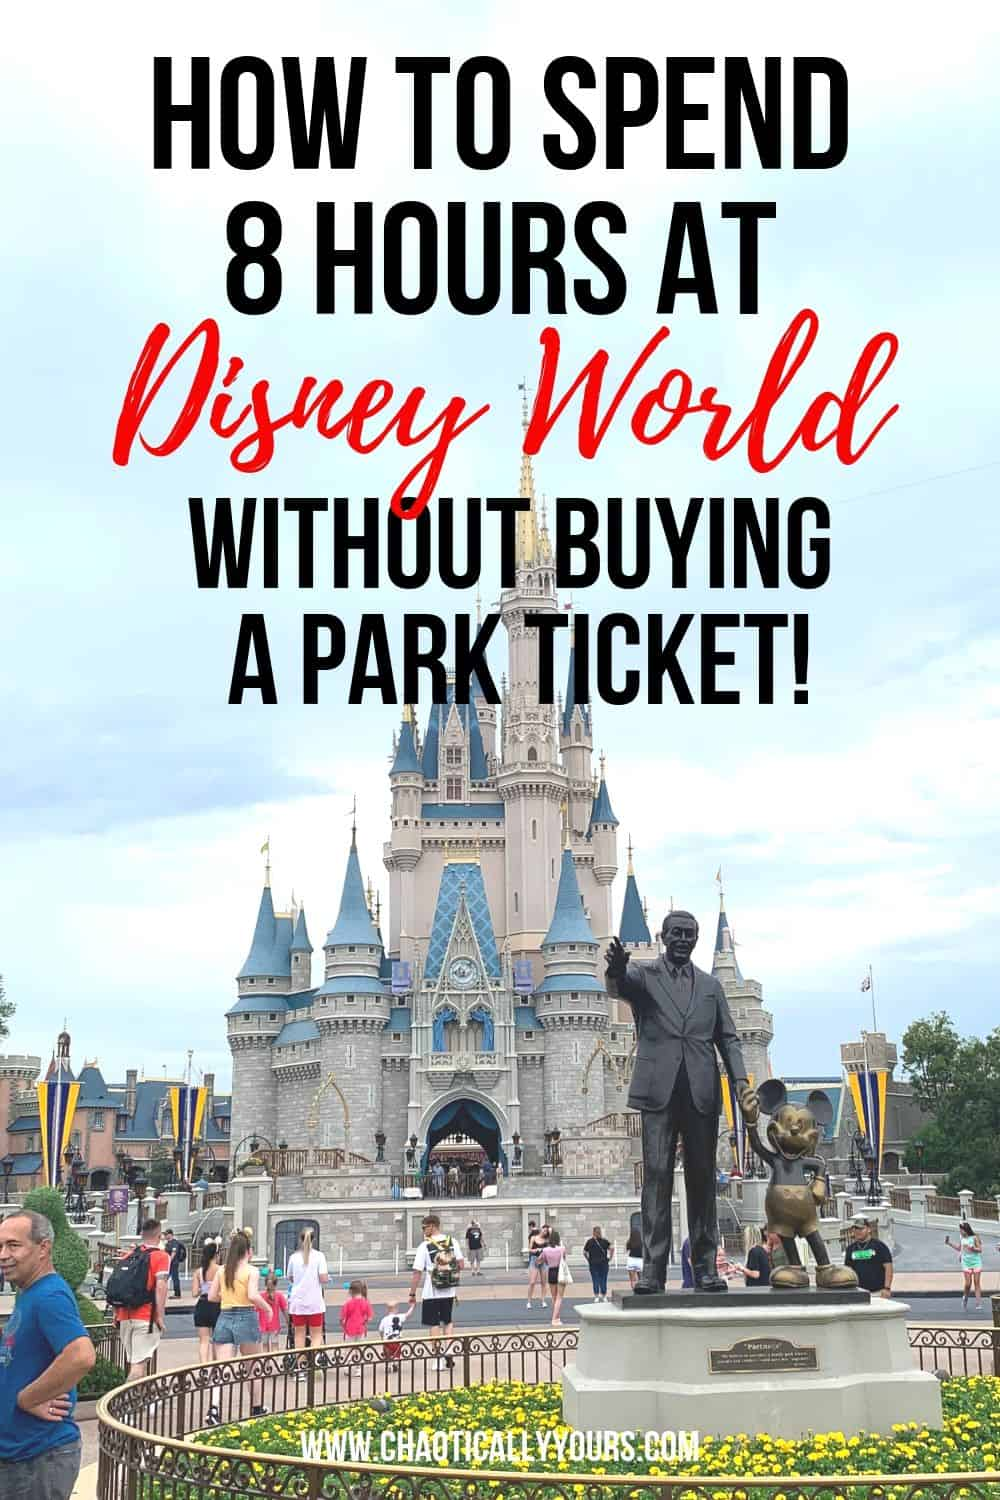 How YOU can spend 8 hours at Walt Disney World without buying a park ticket!